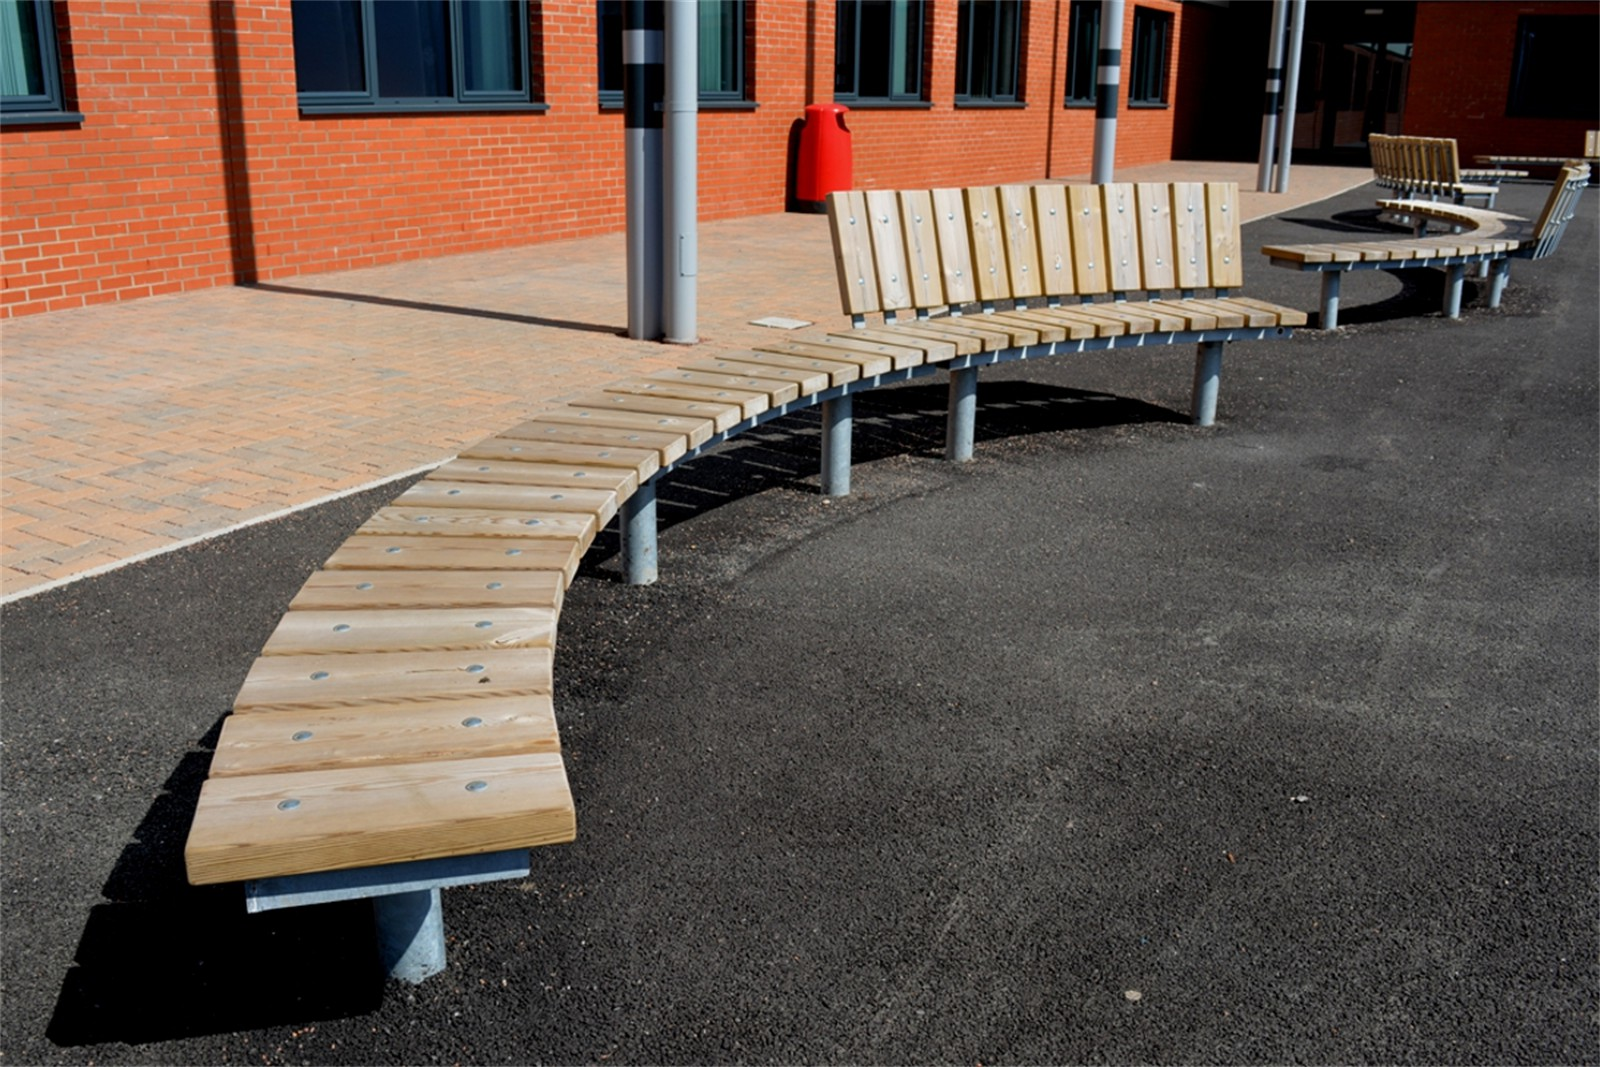 60ssp27 - Spalding long curved bench / seat